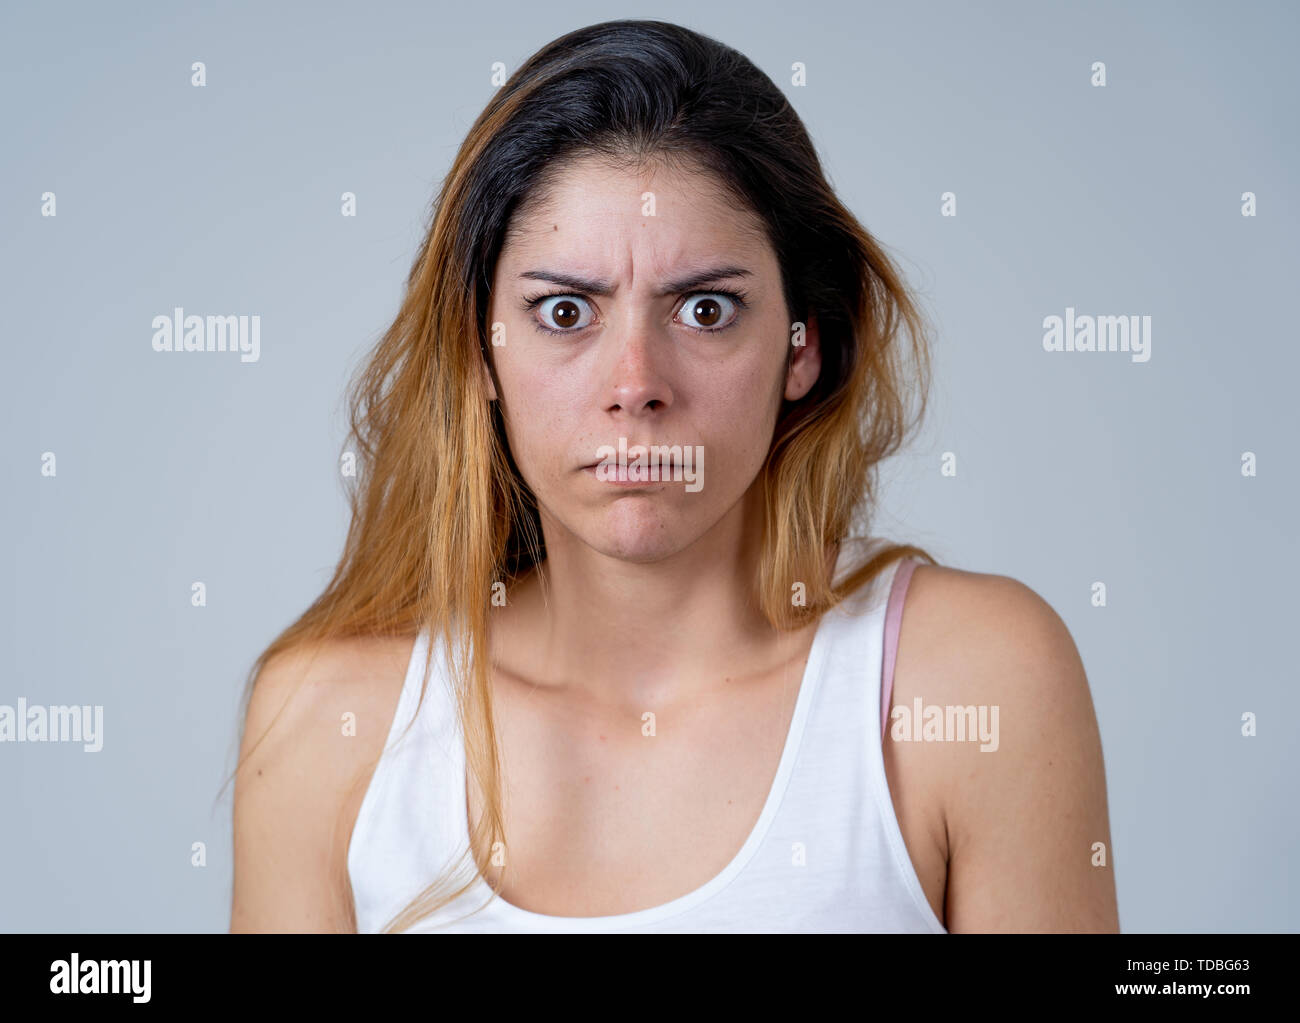 Young woman feeling scared and shocked making fear, anxiety gestures. Looking terrified and desperate. People and Human emotions and Violence and aggr - Stock Image